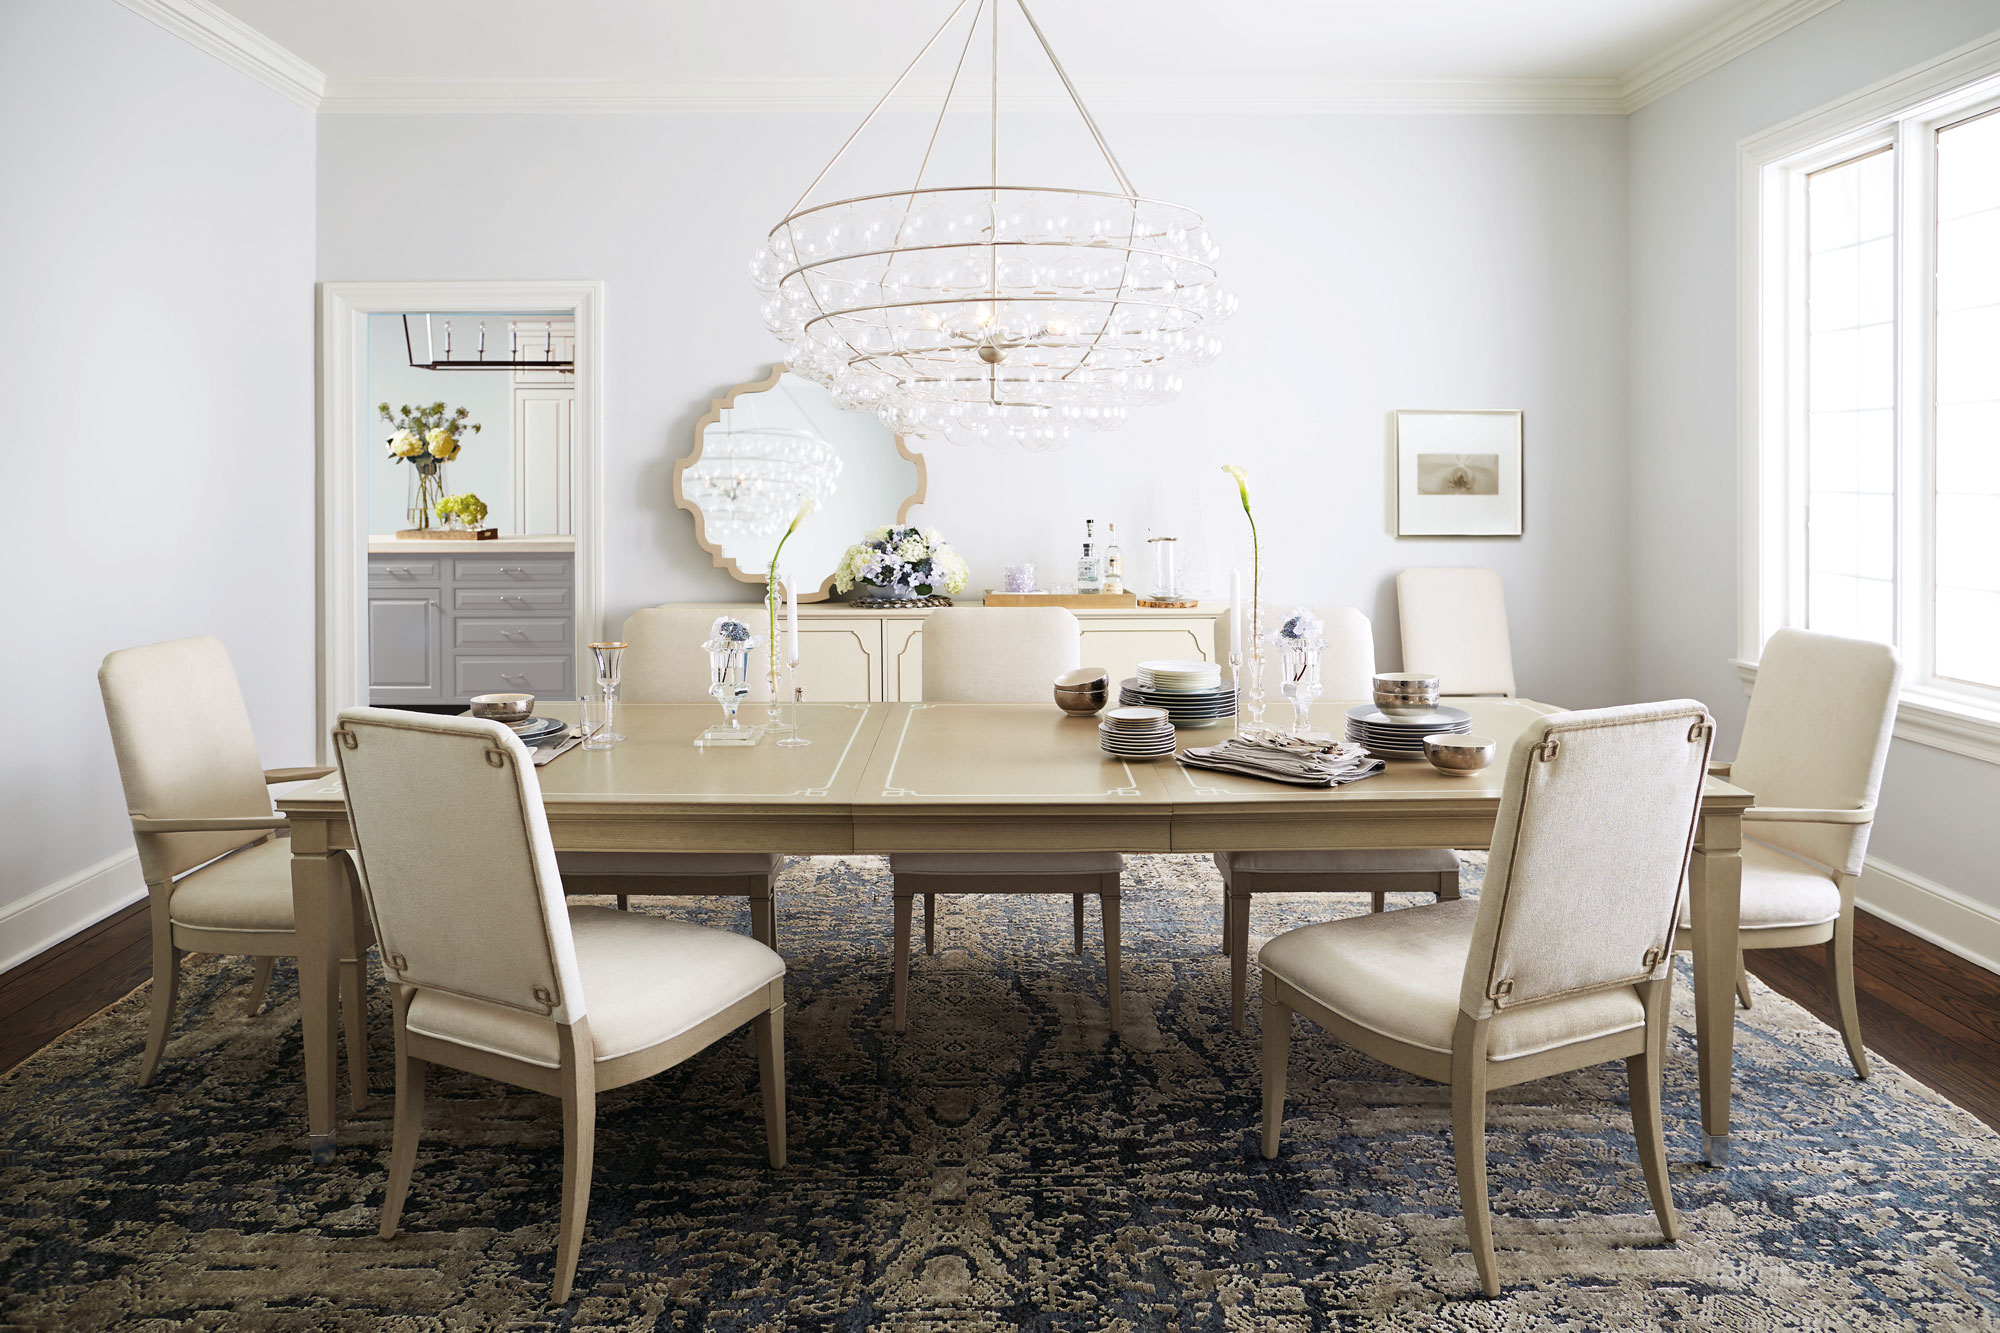 dining table 371 222 read more about dining table print share savoy